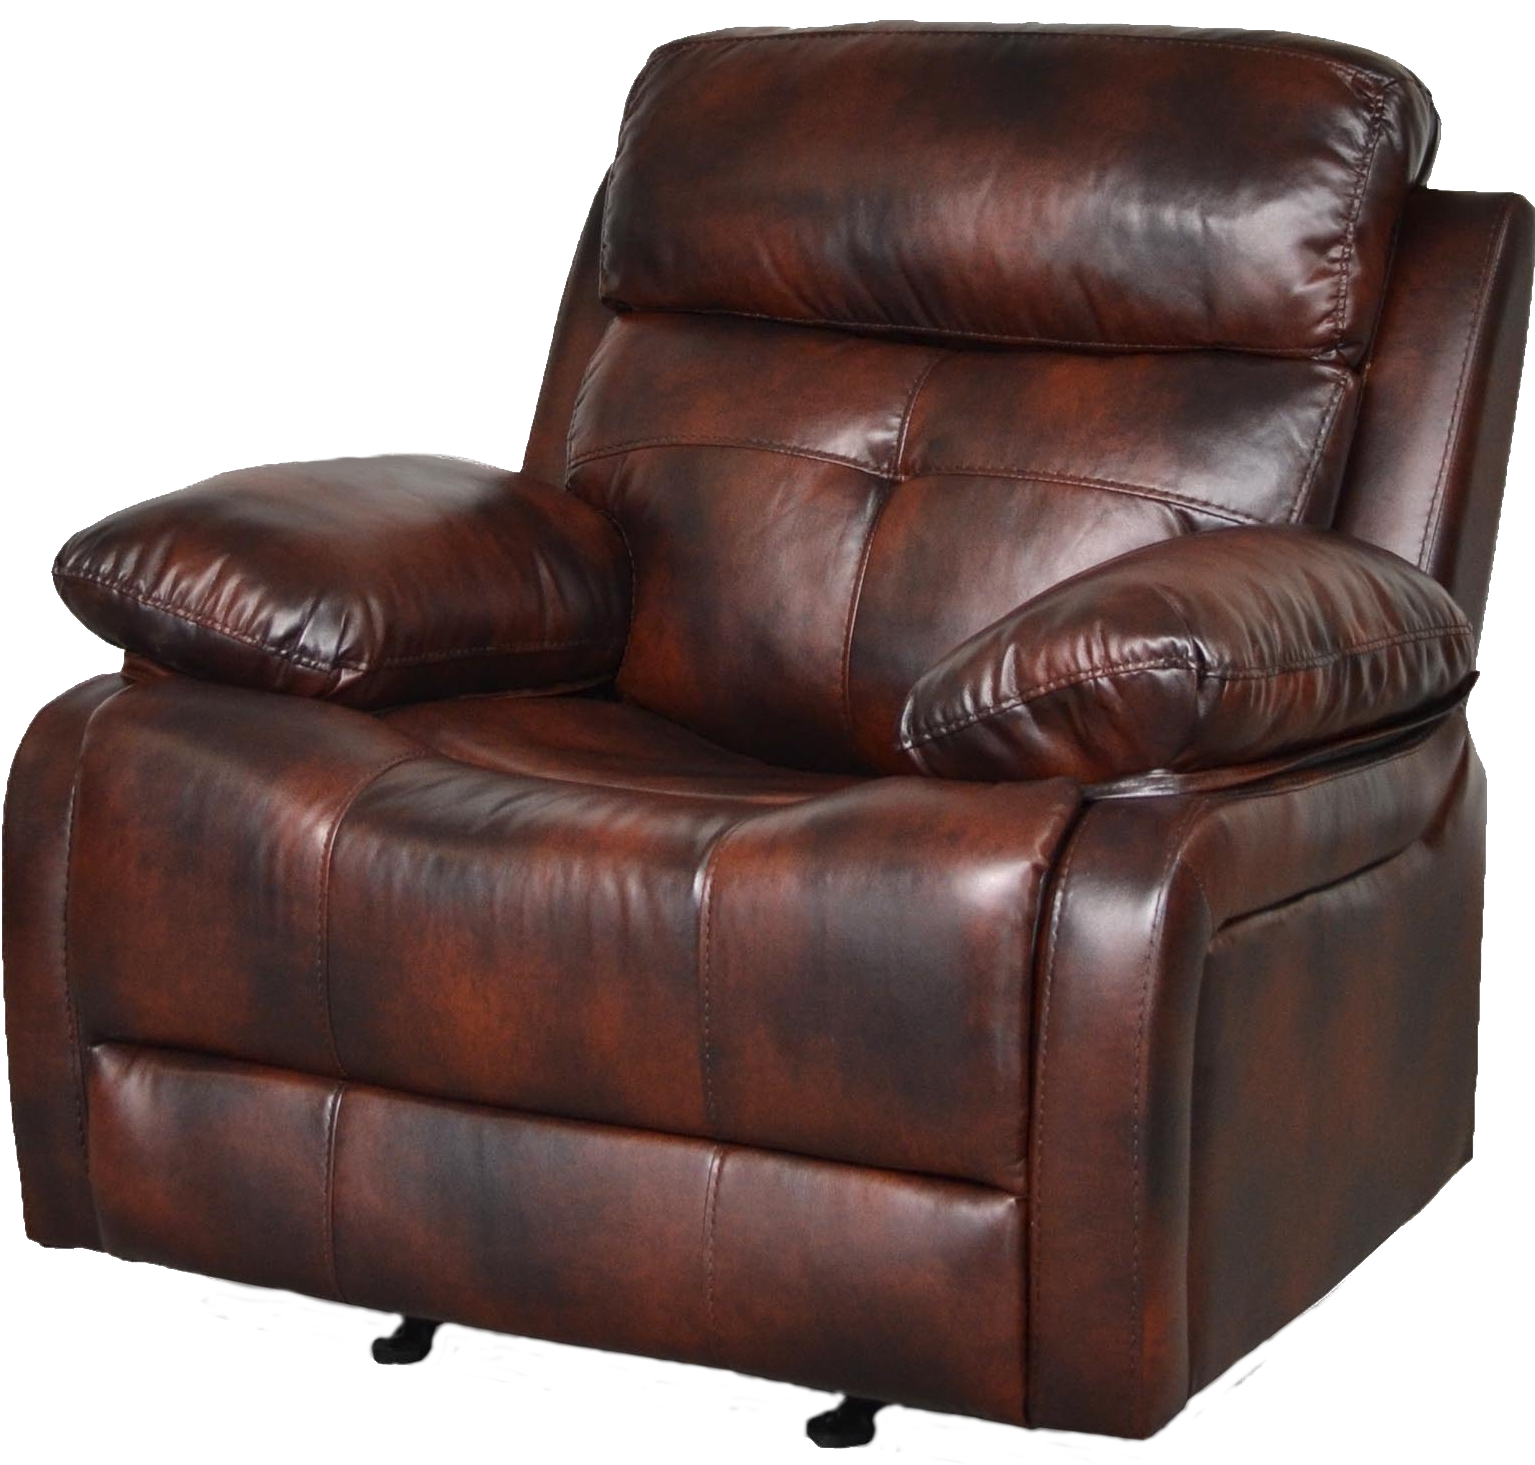 Aria Rocker Recliner Auburn Brown Faux Leather Recliner